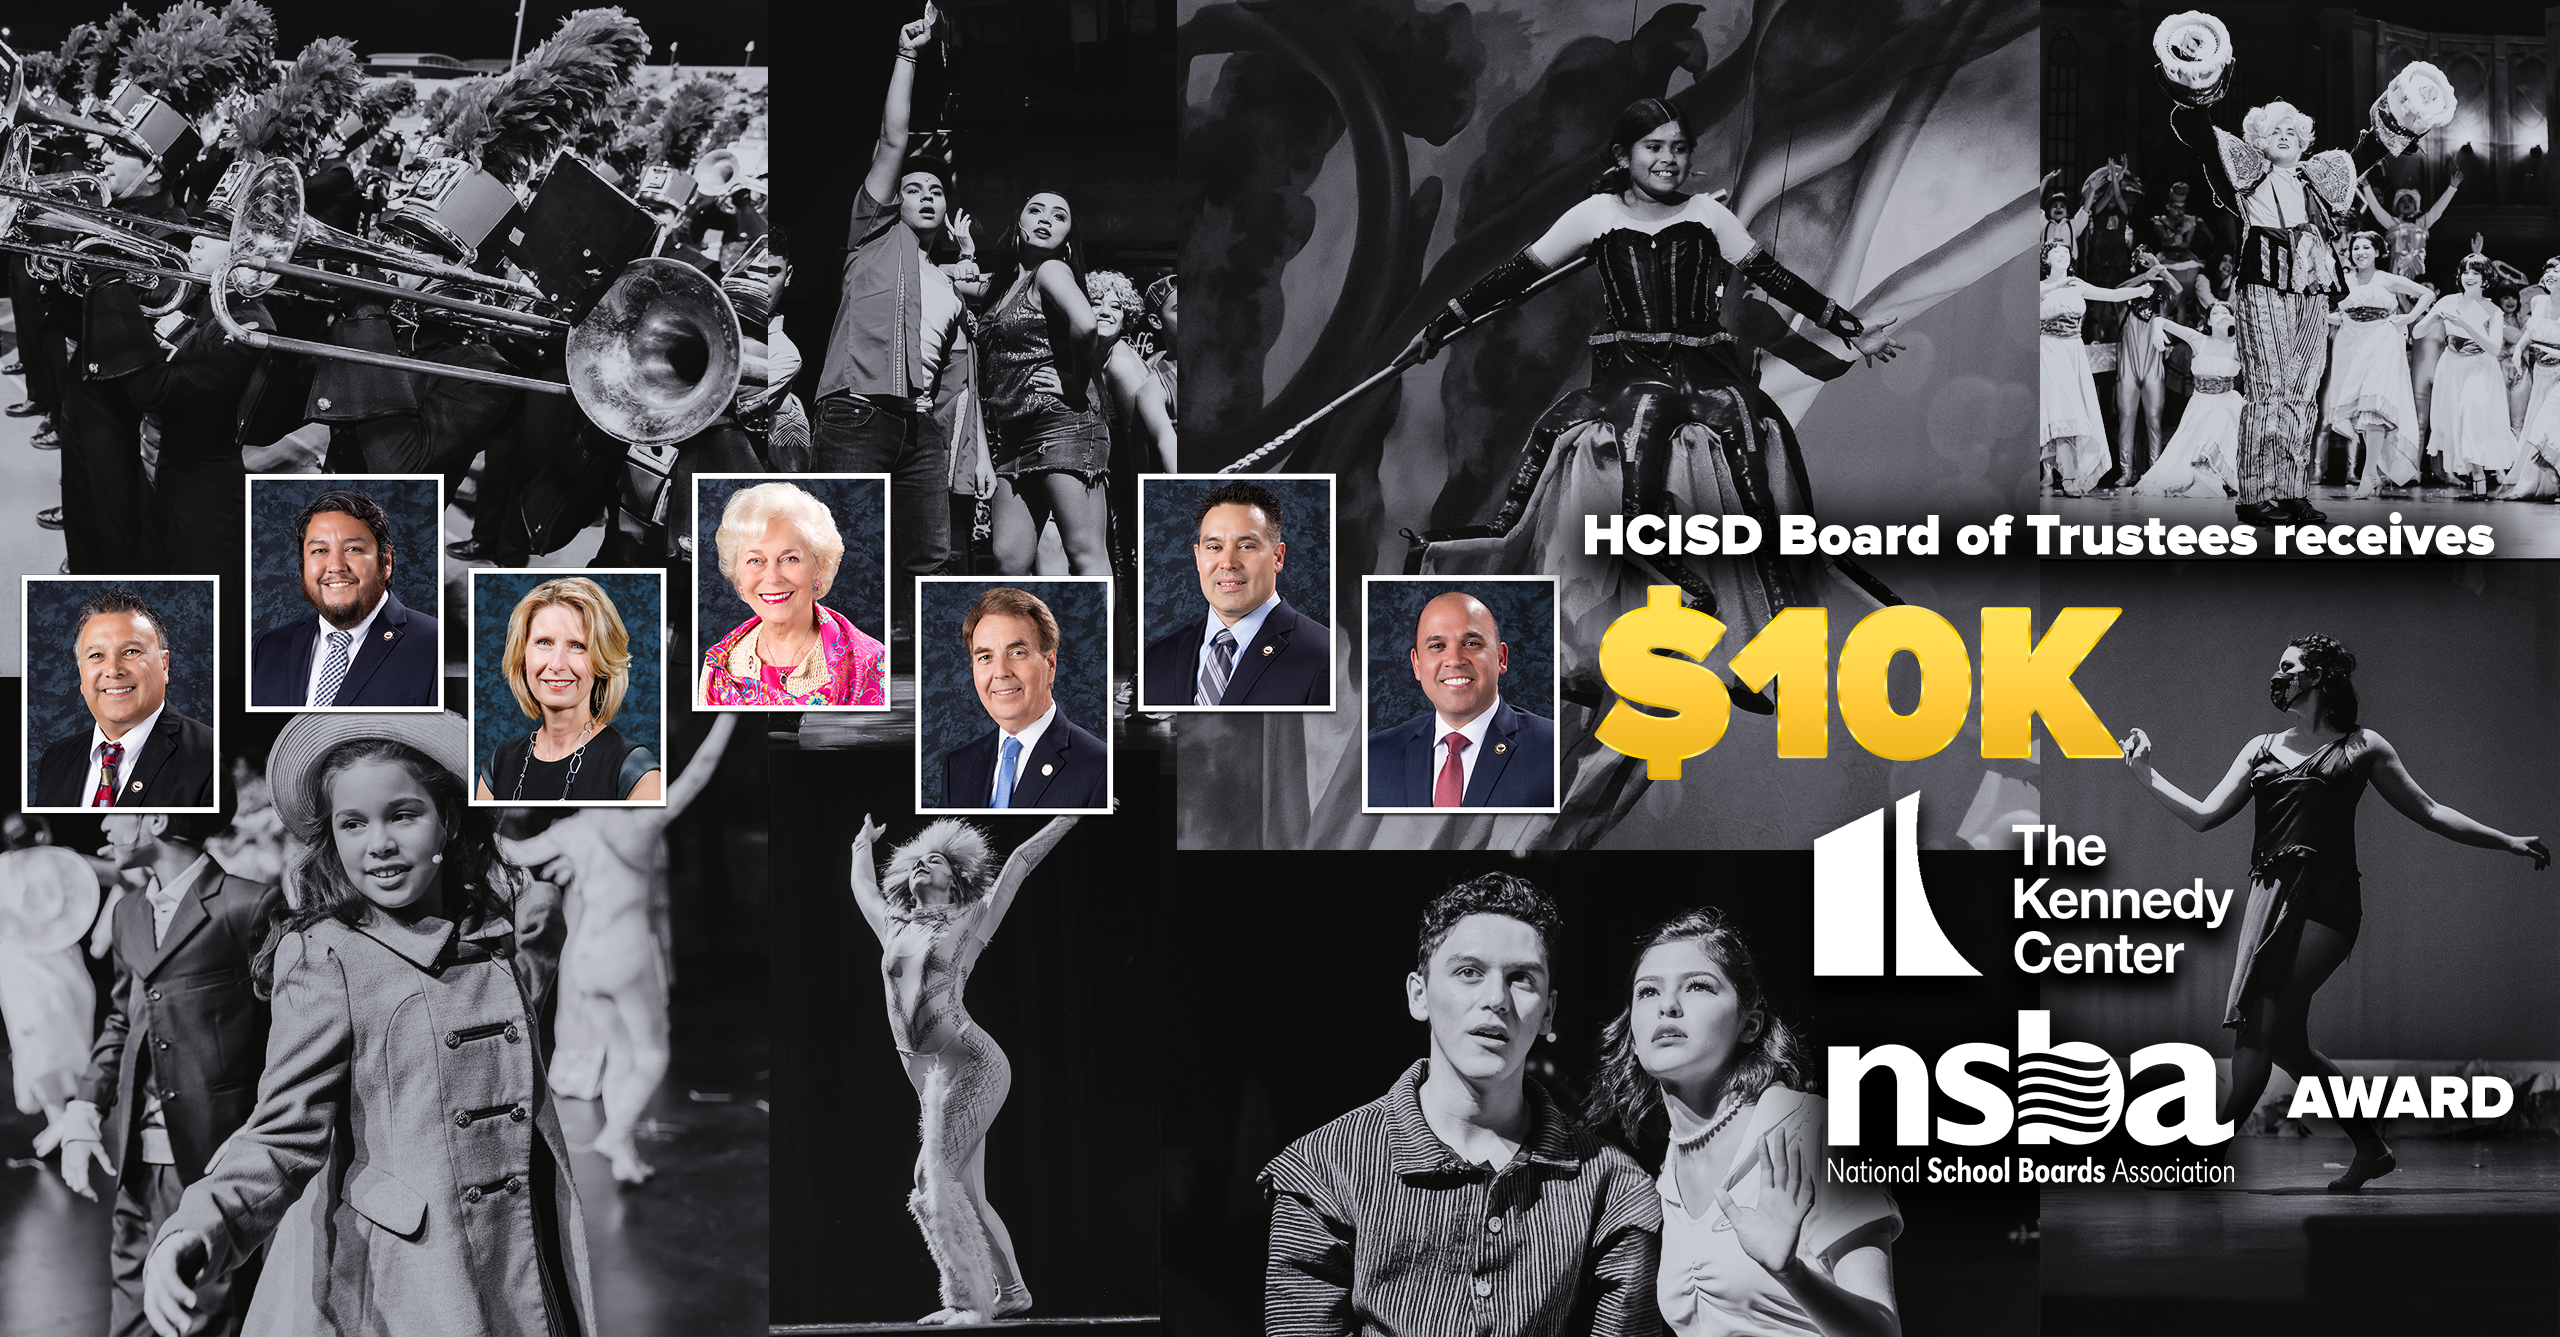 HCISD Board of Trustees receives $10K Kennedy Center and NSBA award